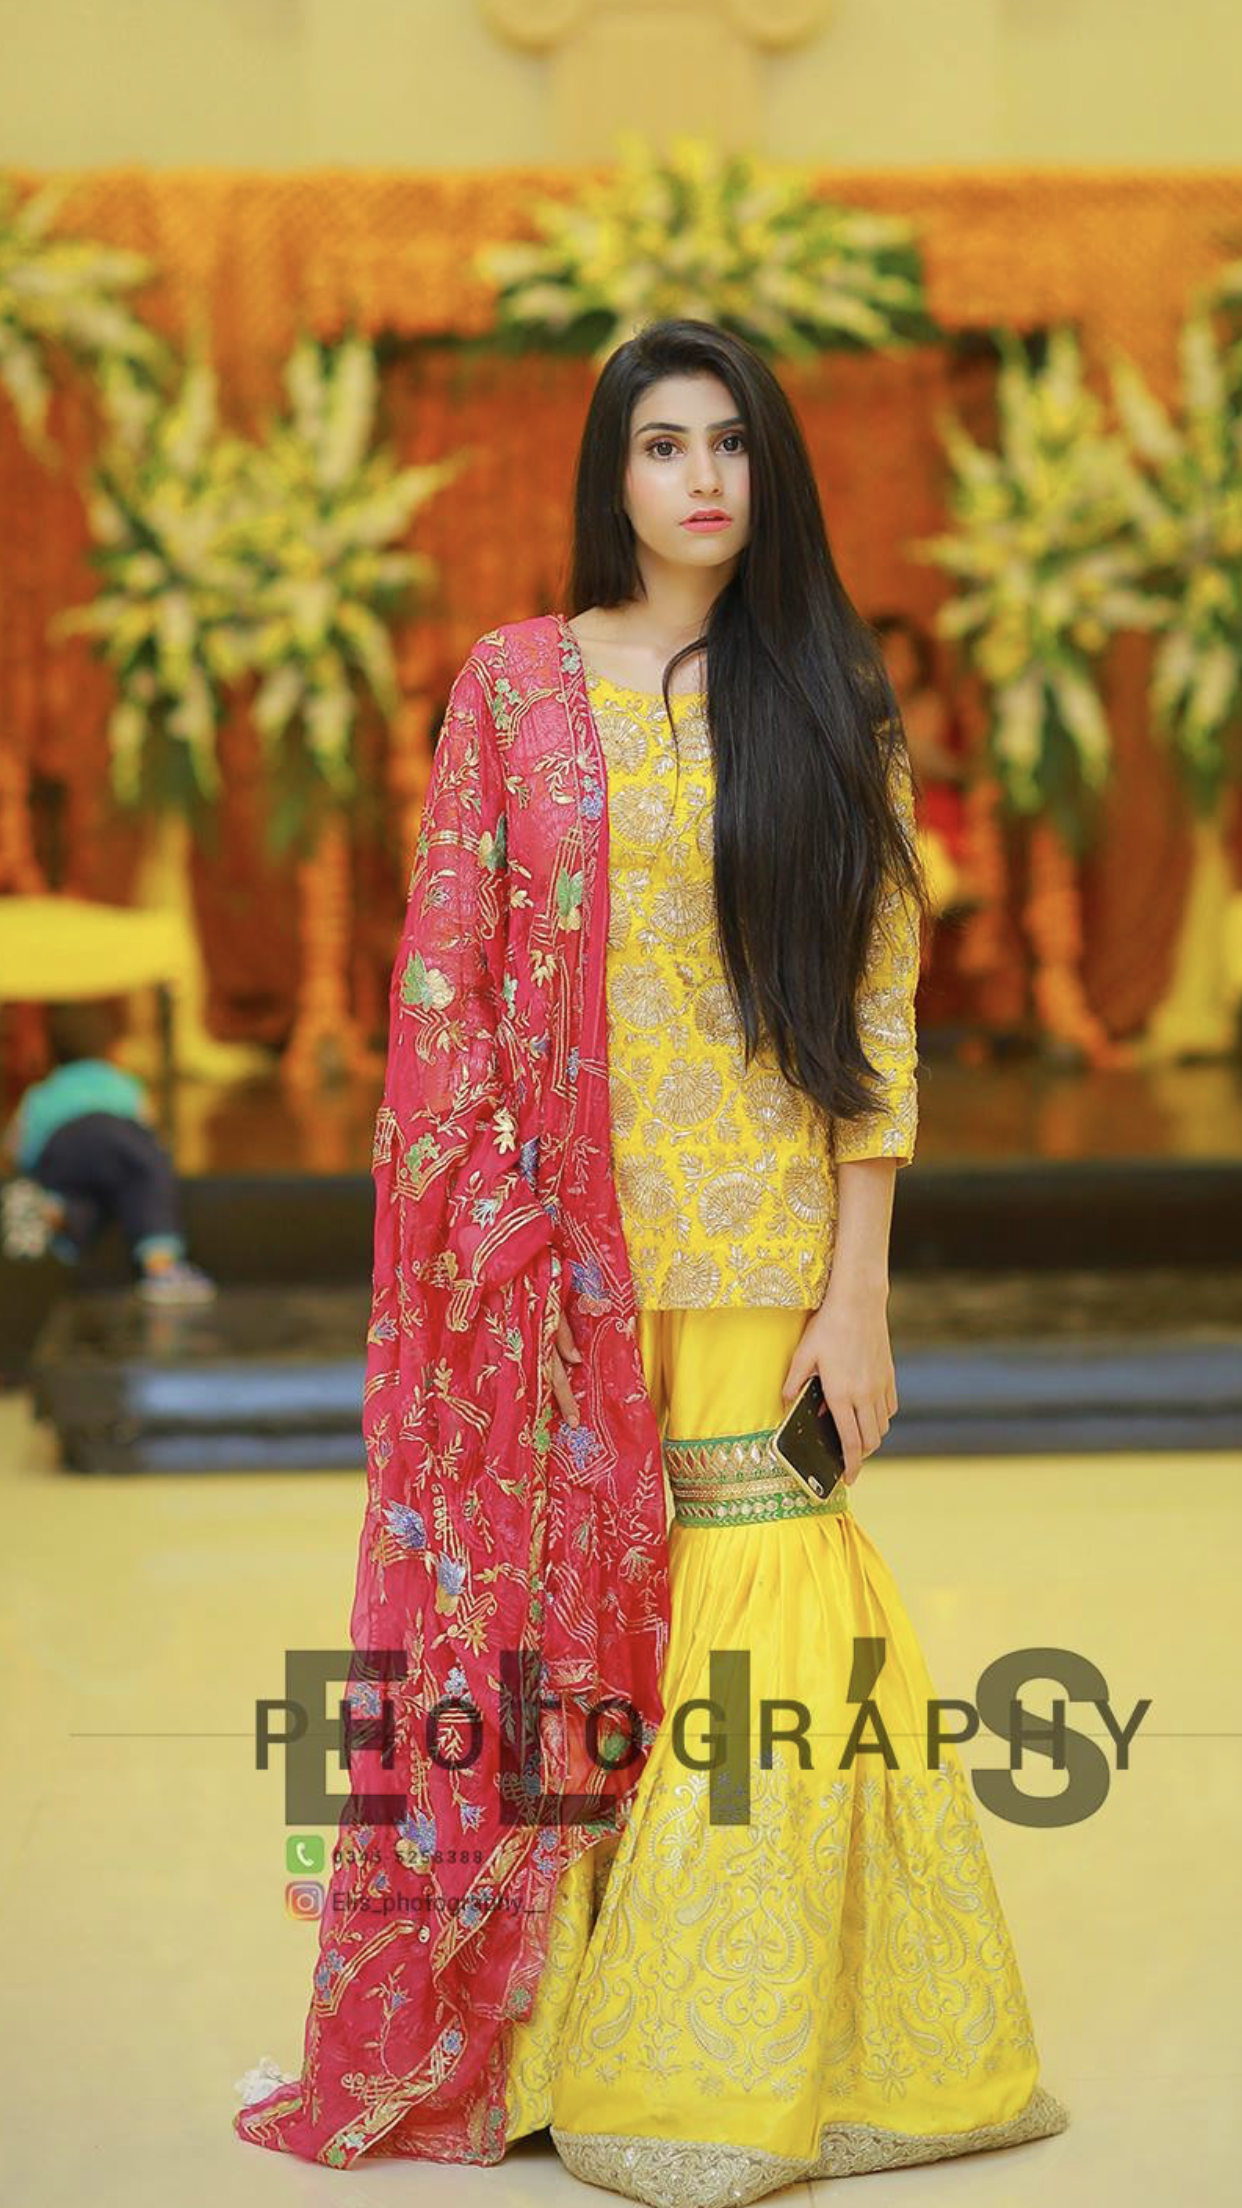 Mayun outfit inspo for brides sister